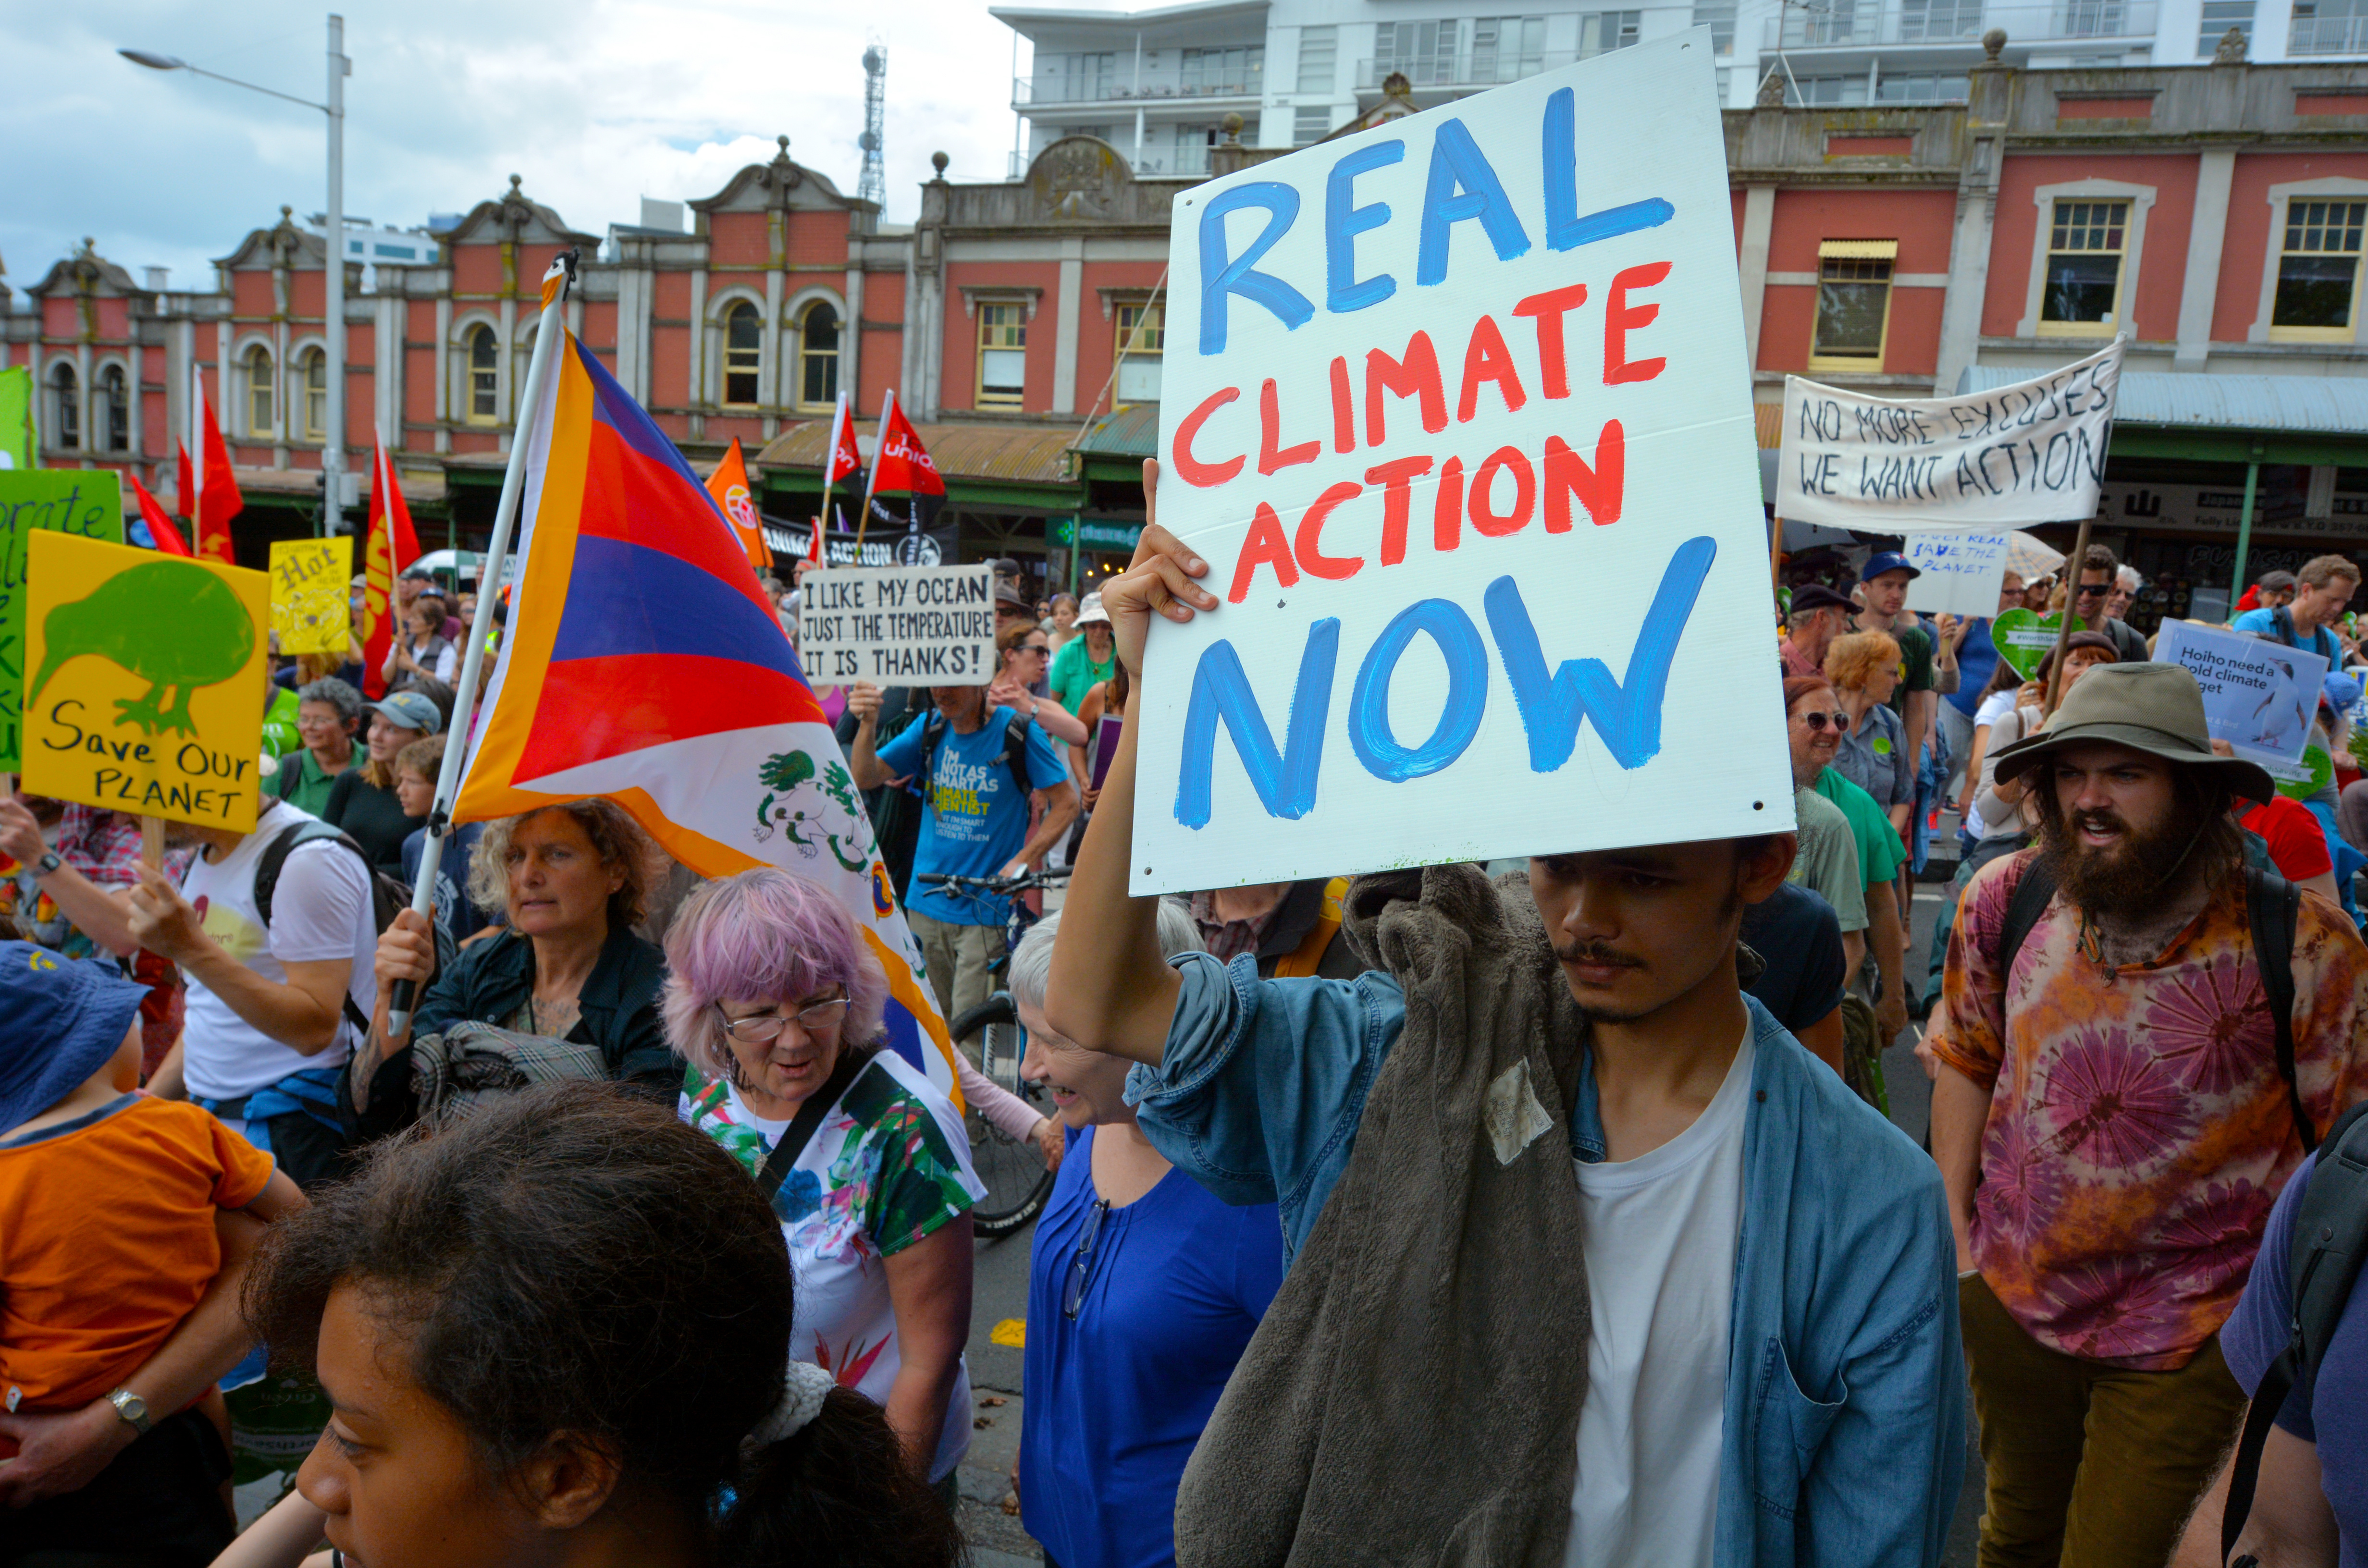 Thousands rallied for action on climate change (Photo: Auckland, 28 November 2015)